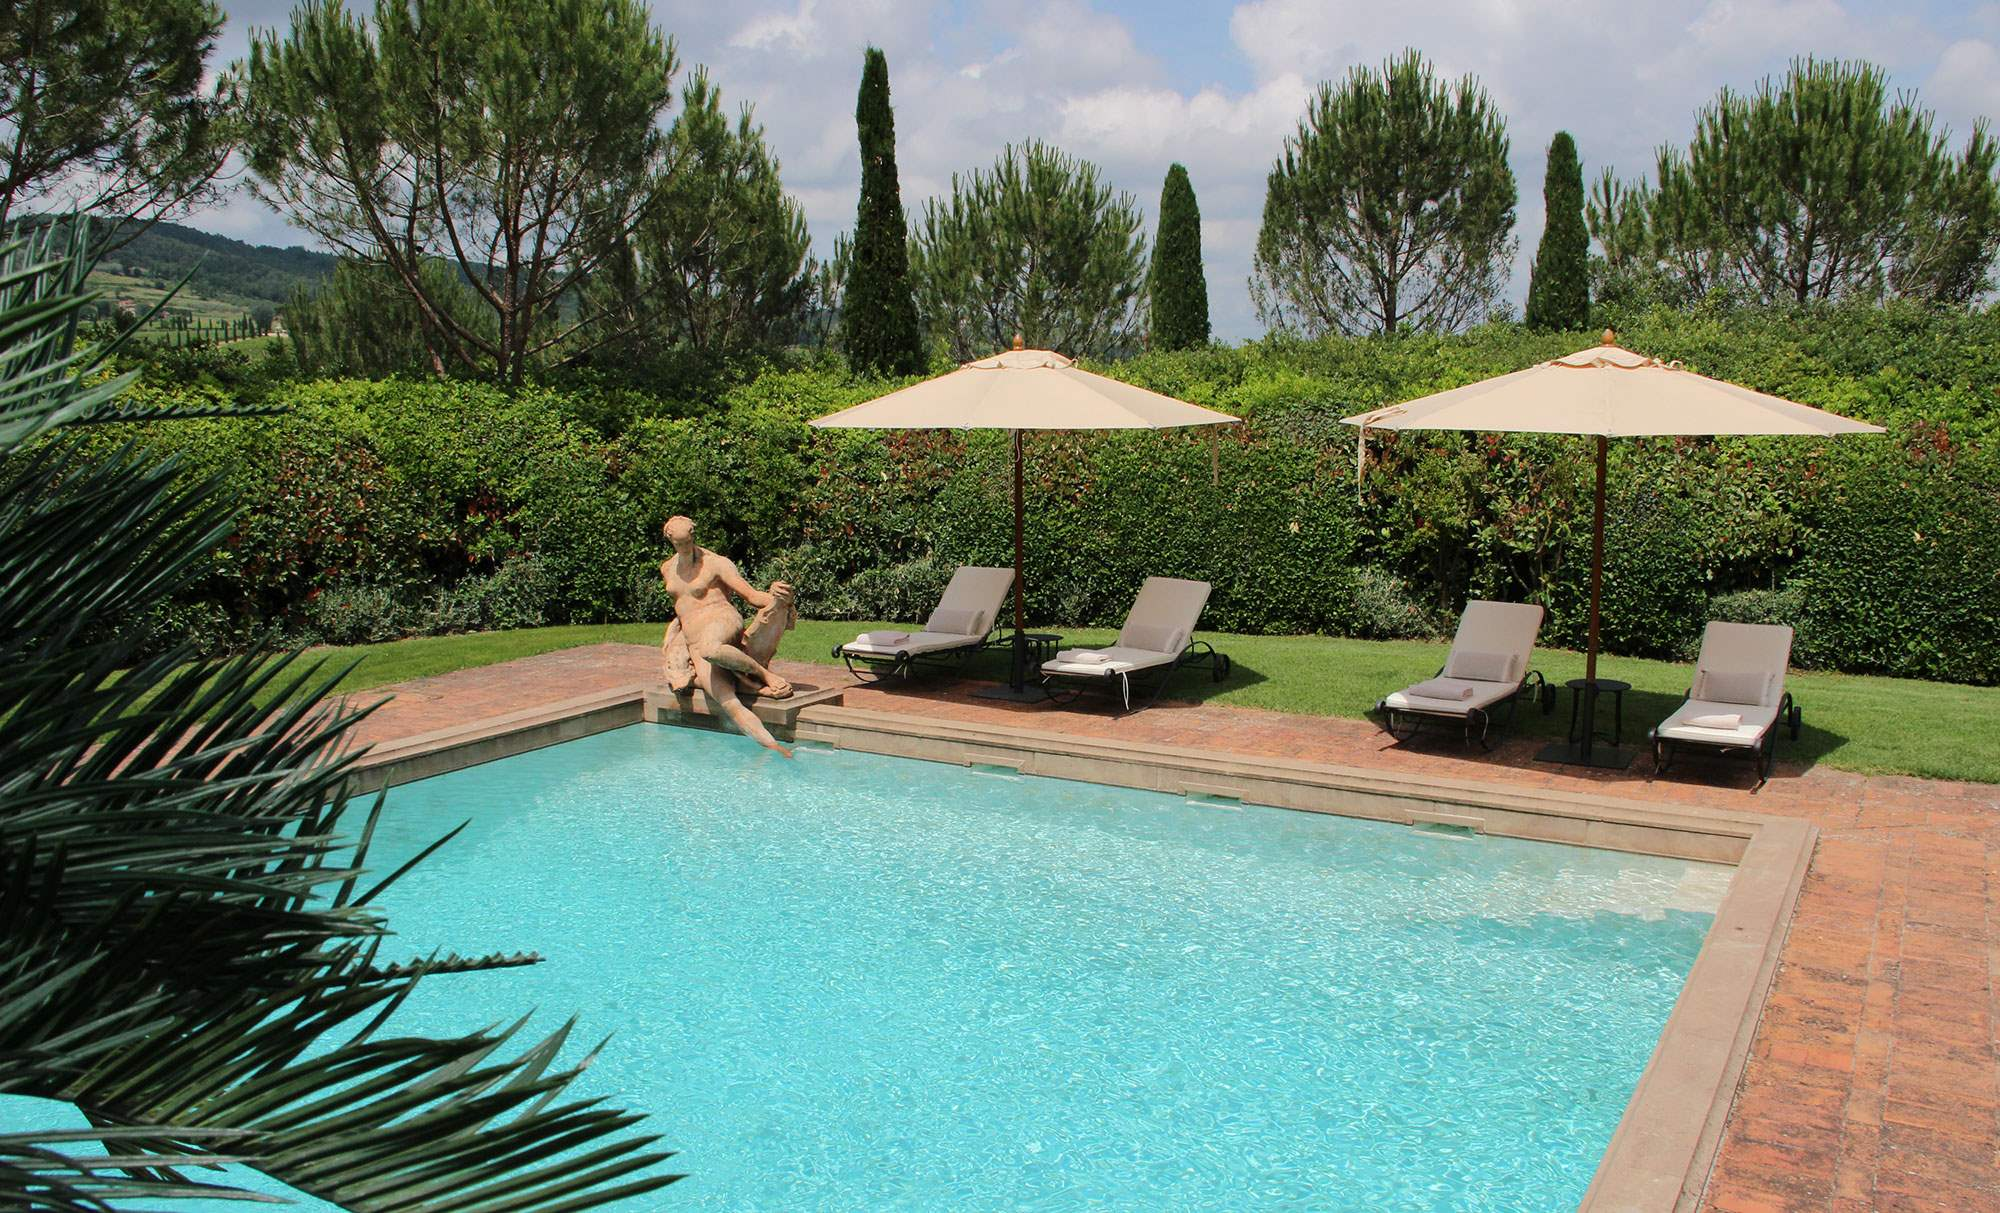 Villa Tuscan, 6 (+2), 3 bedroom villa in Chianti & Countryside, Tuscany Photo #18